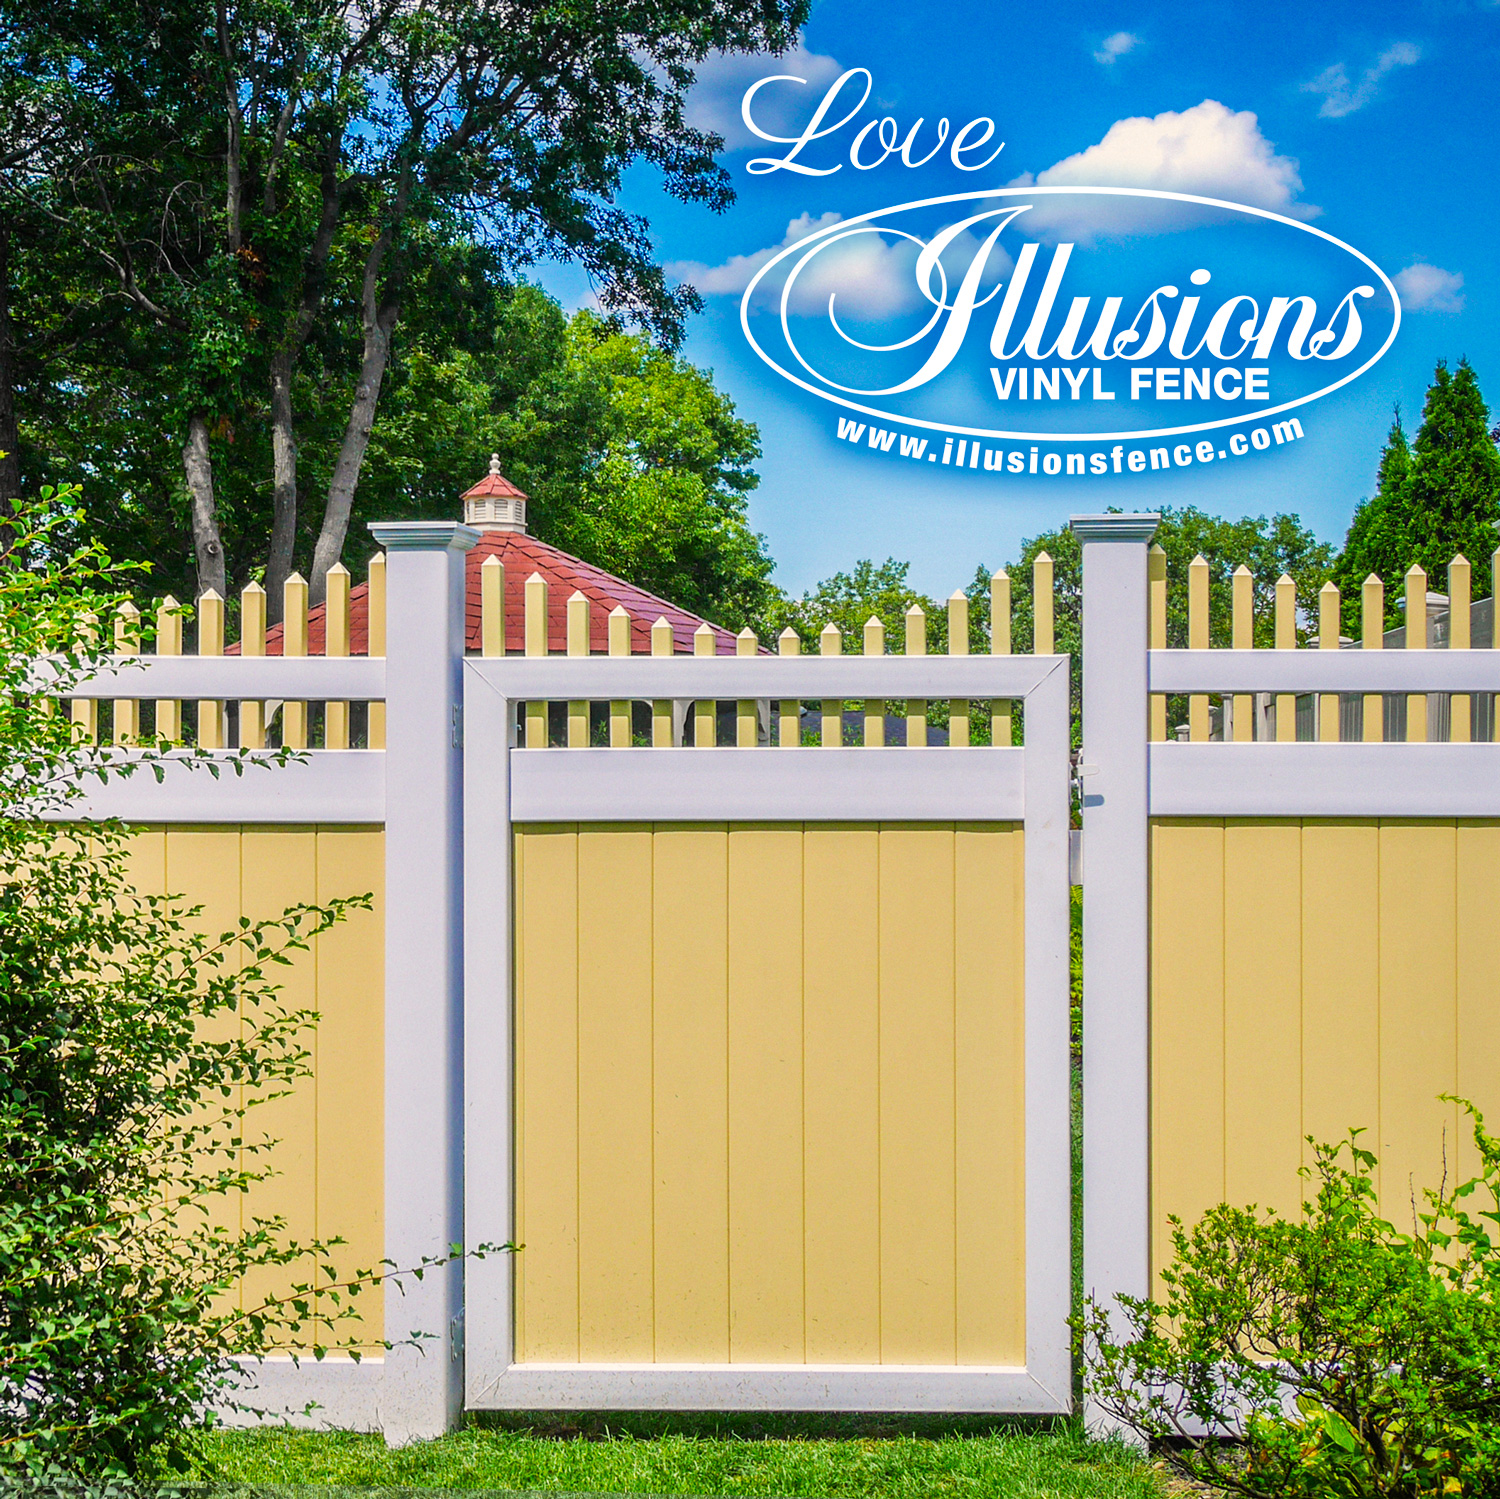 Gotta Love Illusions Vinyl Fence Illusions Fence